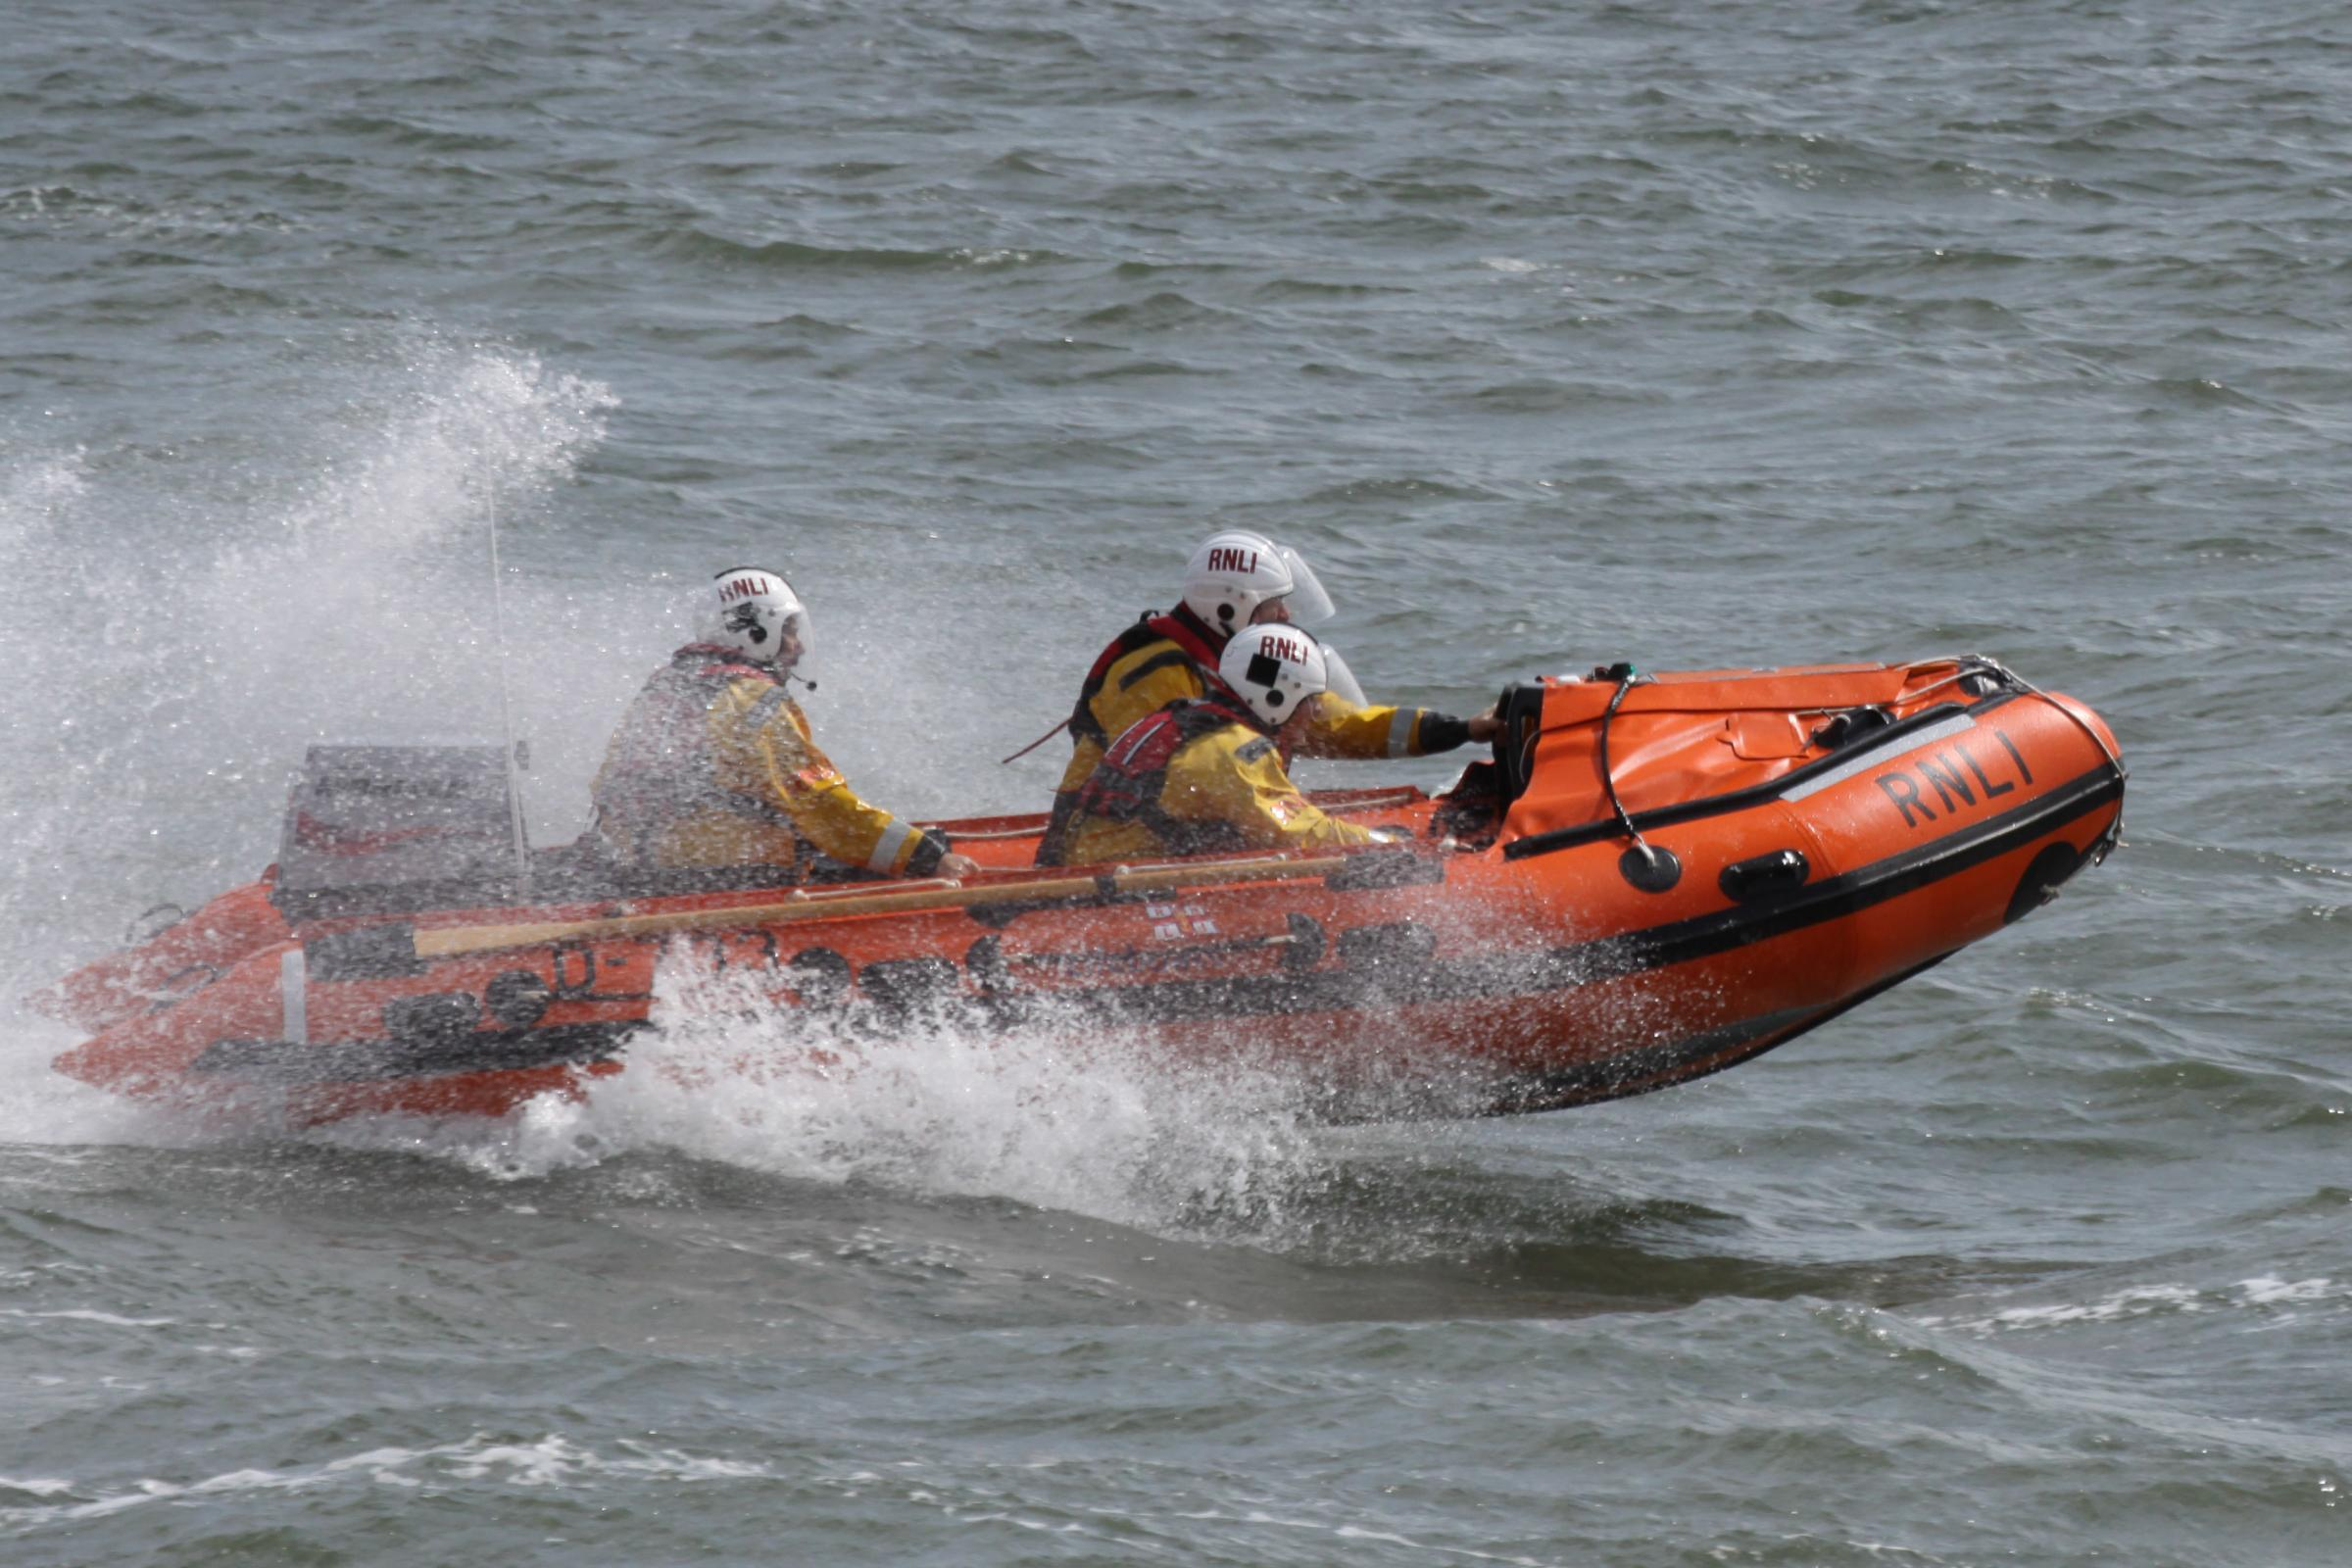 ASSISTANCE: Barrow RNLI's inshore lifeboat the Vision of Tamworth was tasked to the scene